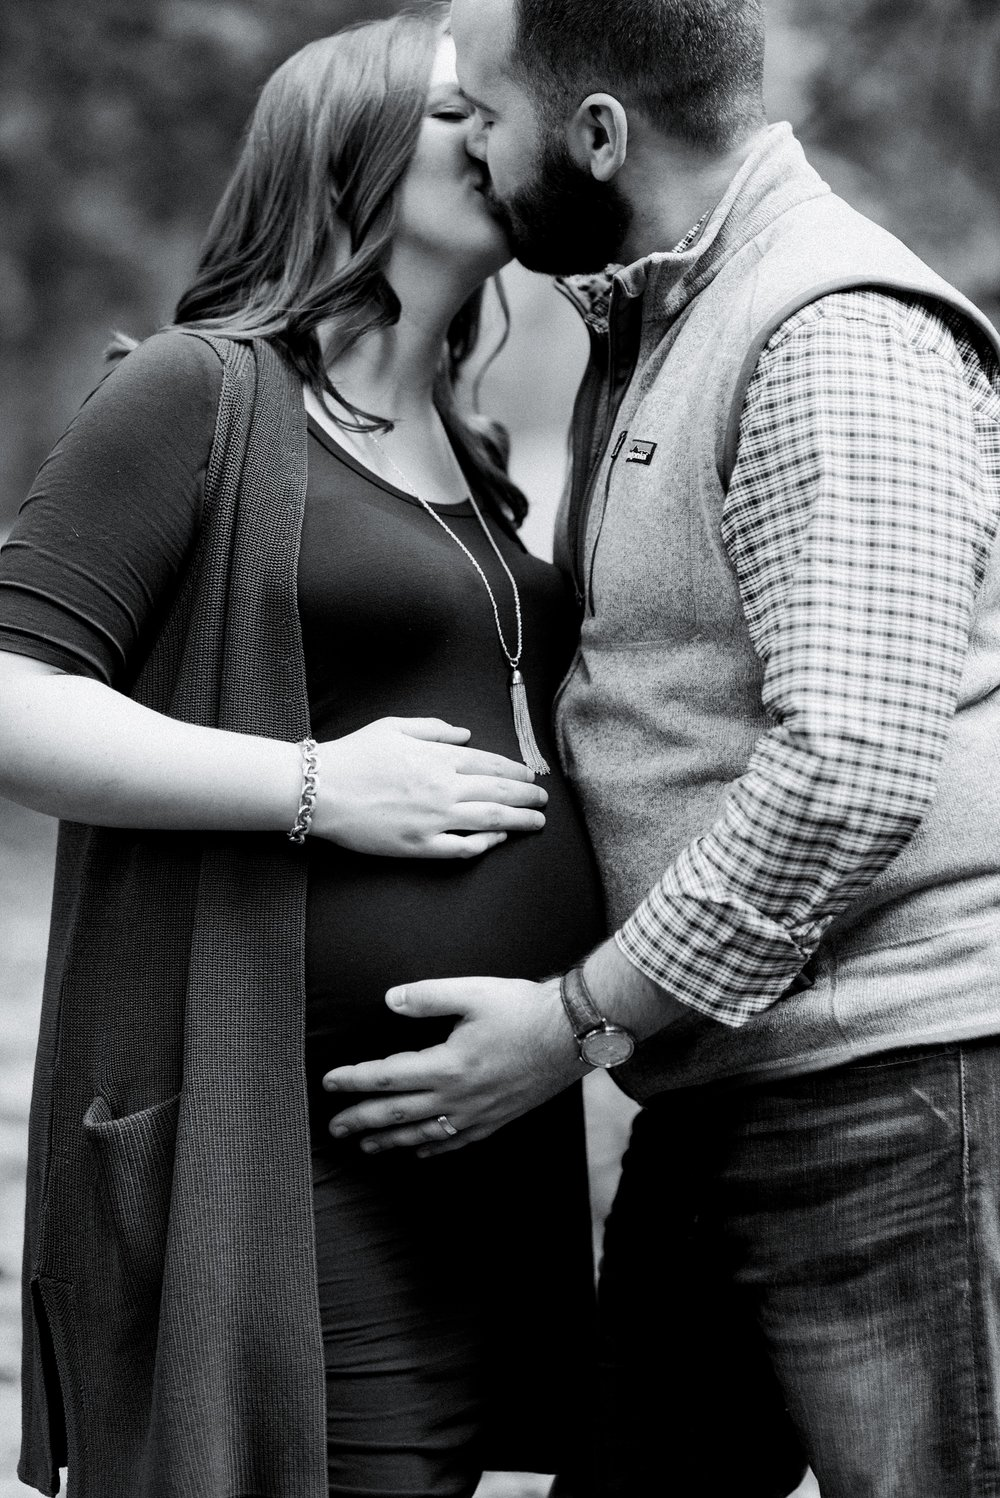 cator-woolforld-gardens-atlanta-fine-art-maternity-photographer-boltfamily-226.jpg